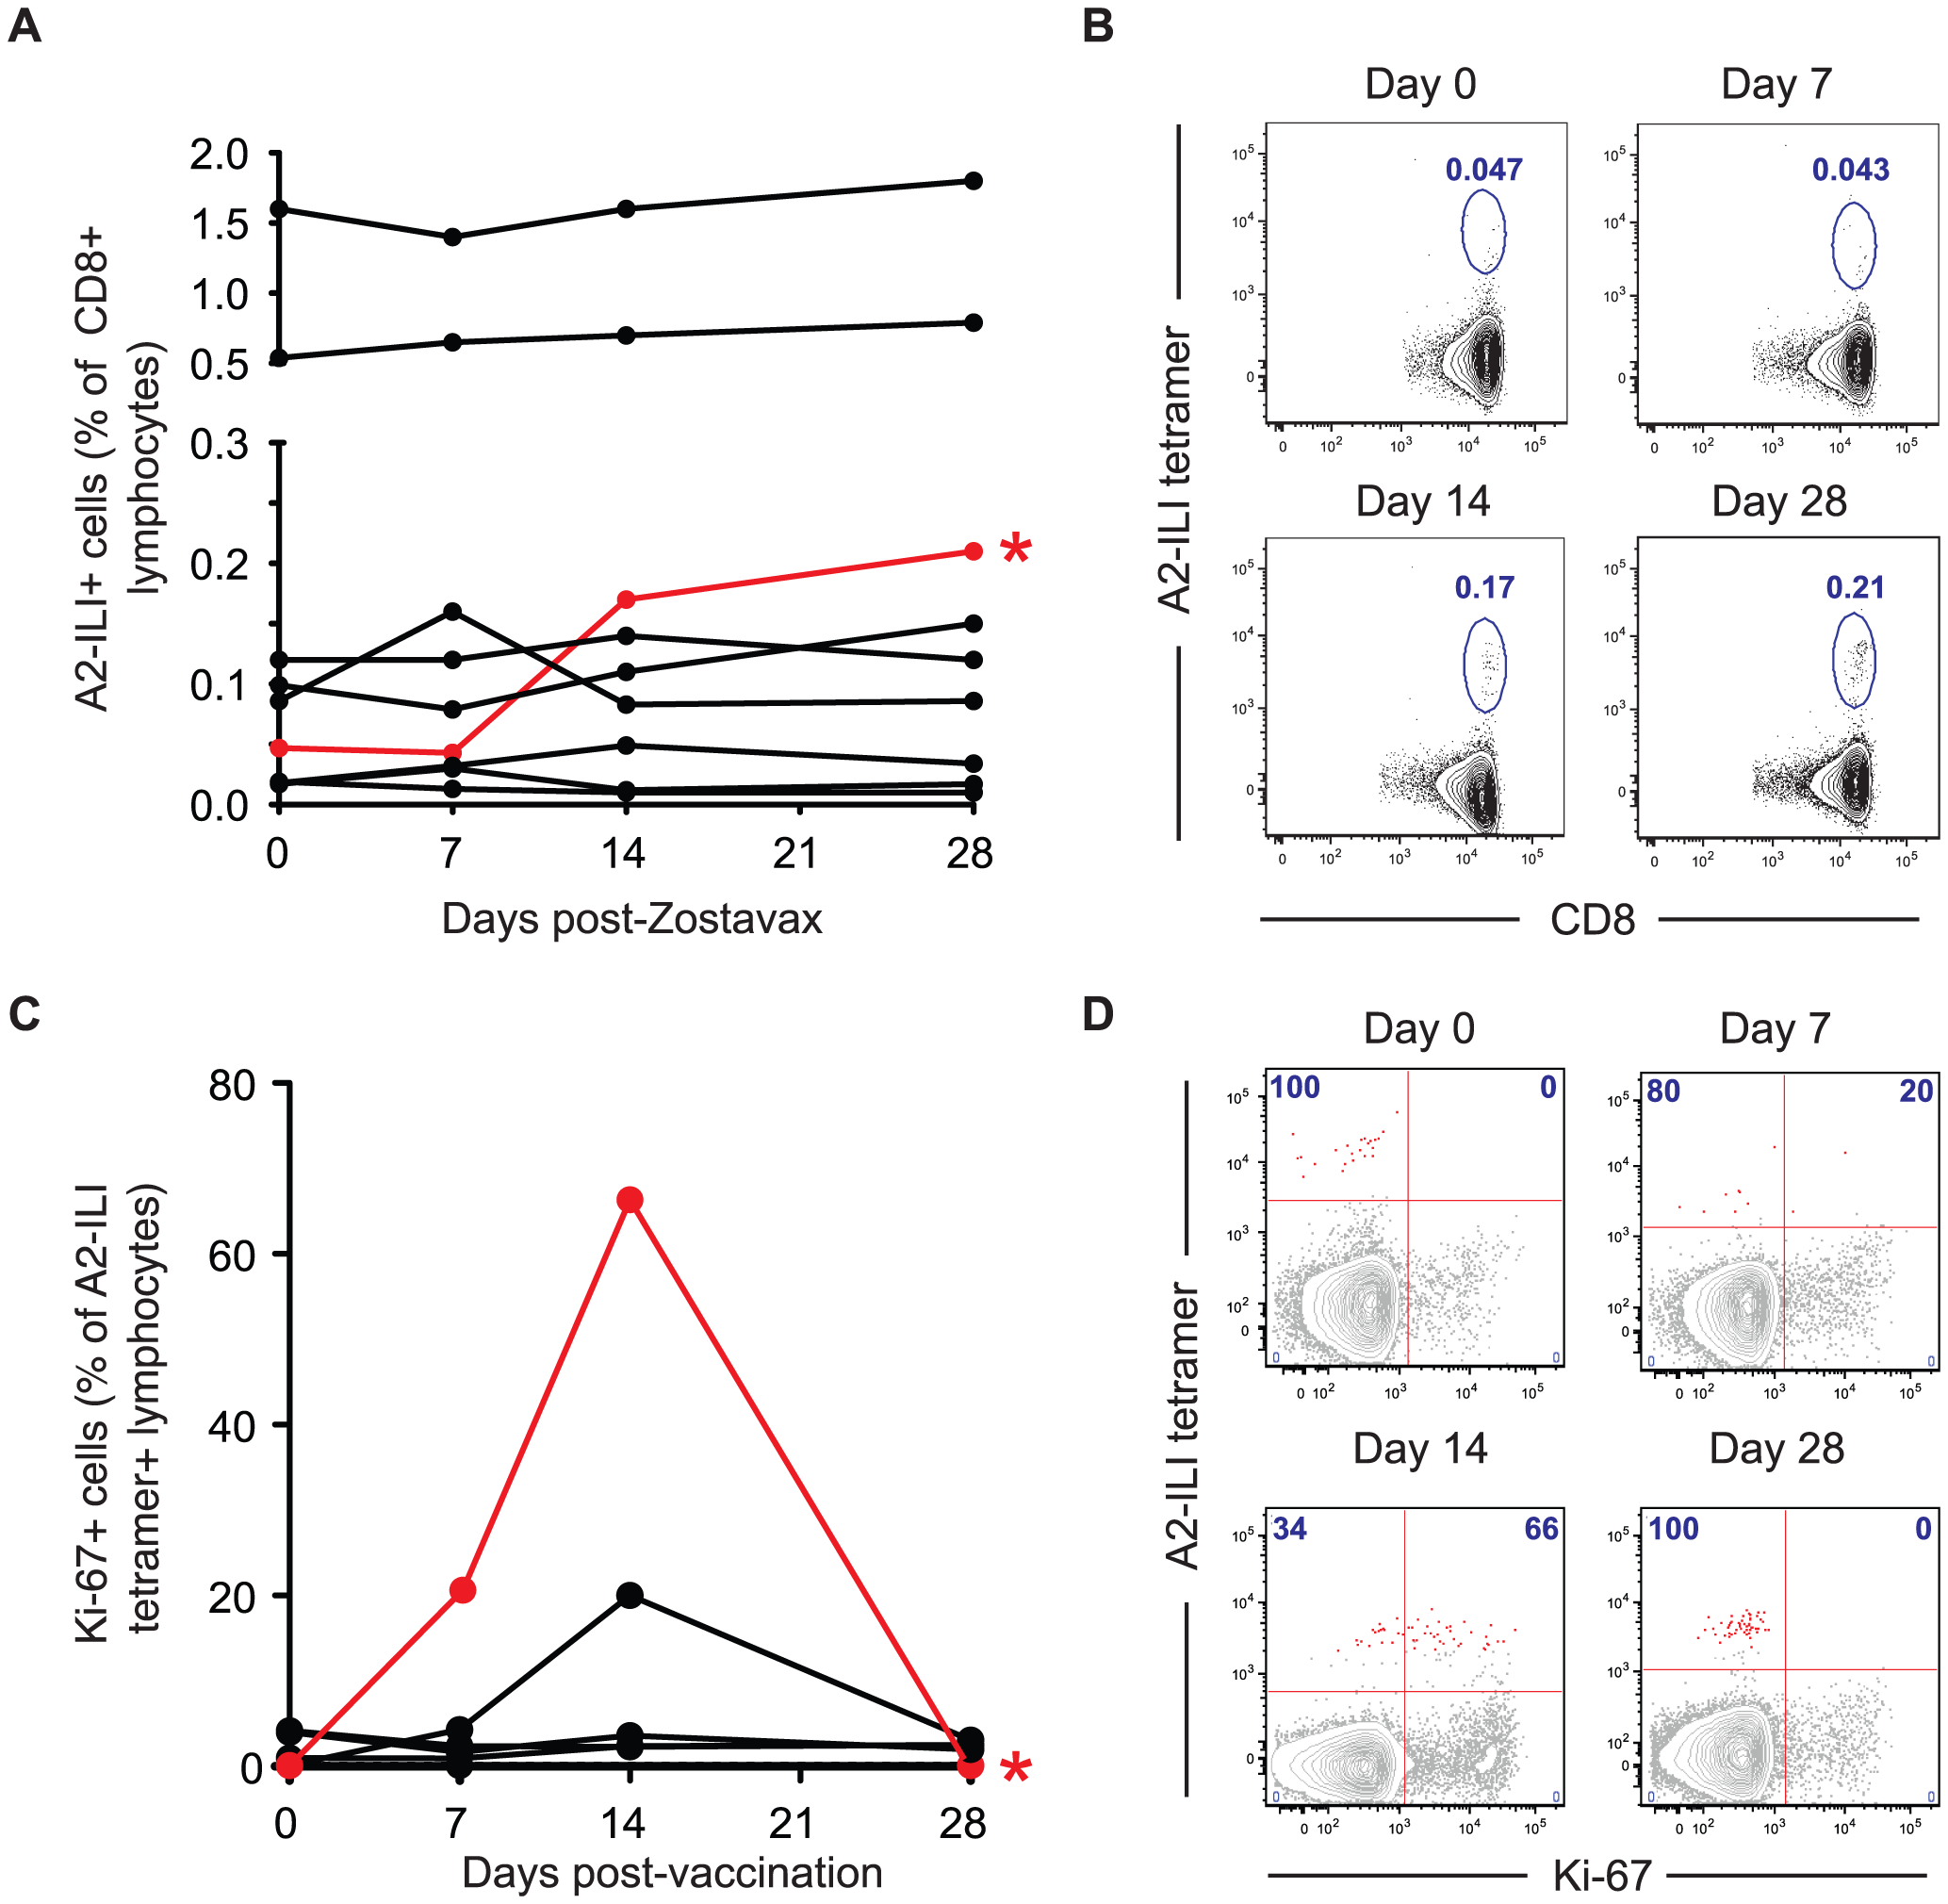 The live attenuated vaccine Zostavax cannot efficiently induce proliferation of ILI-specific CD8 T cells in most individuals.